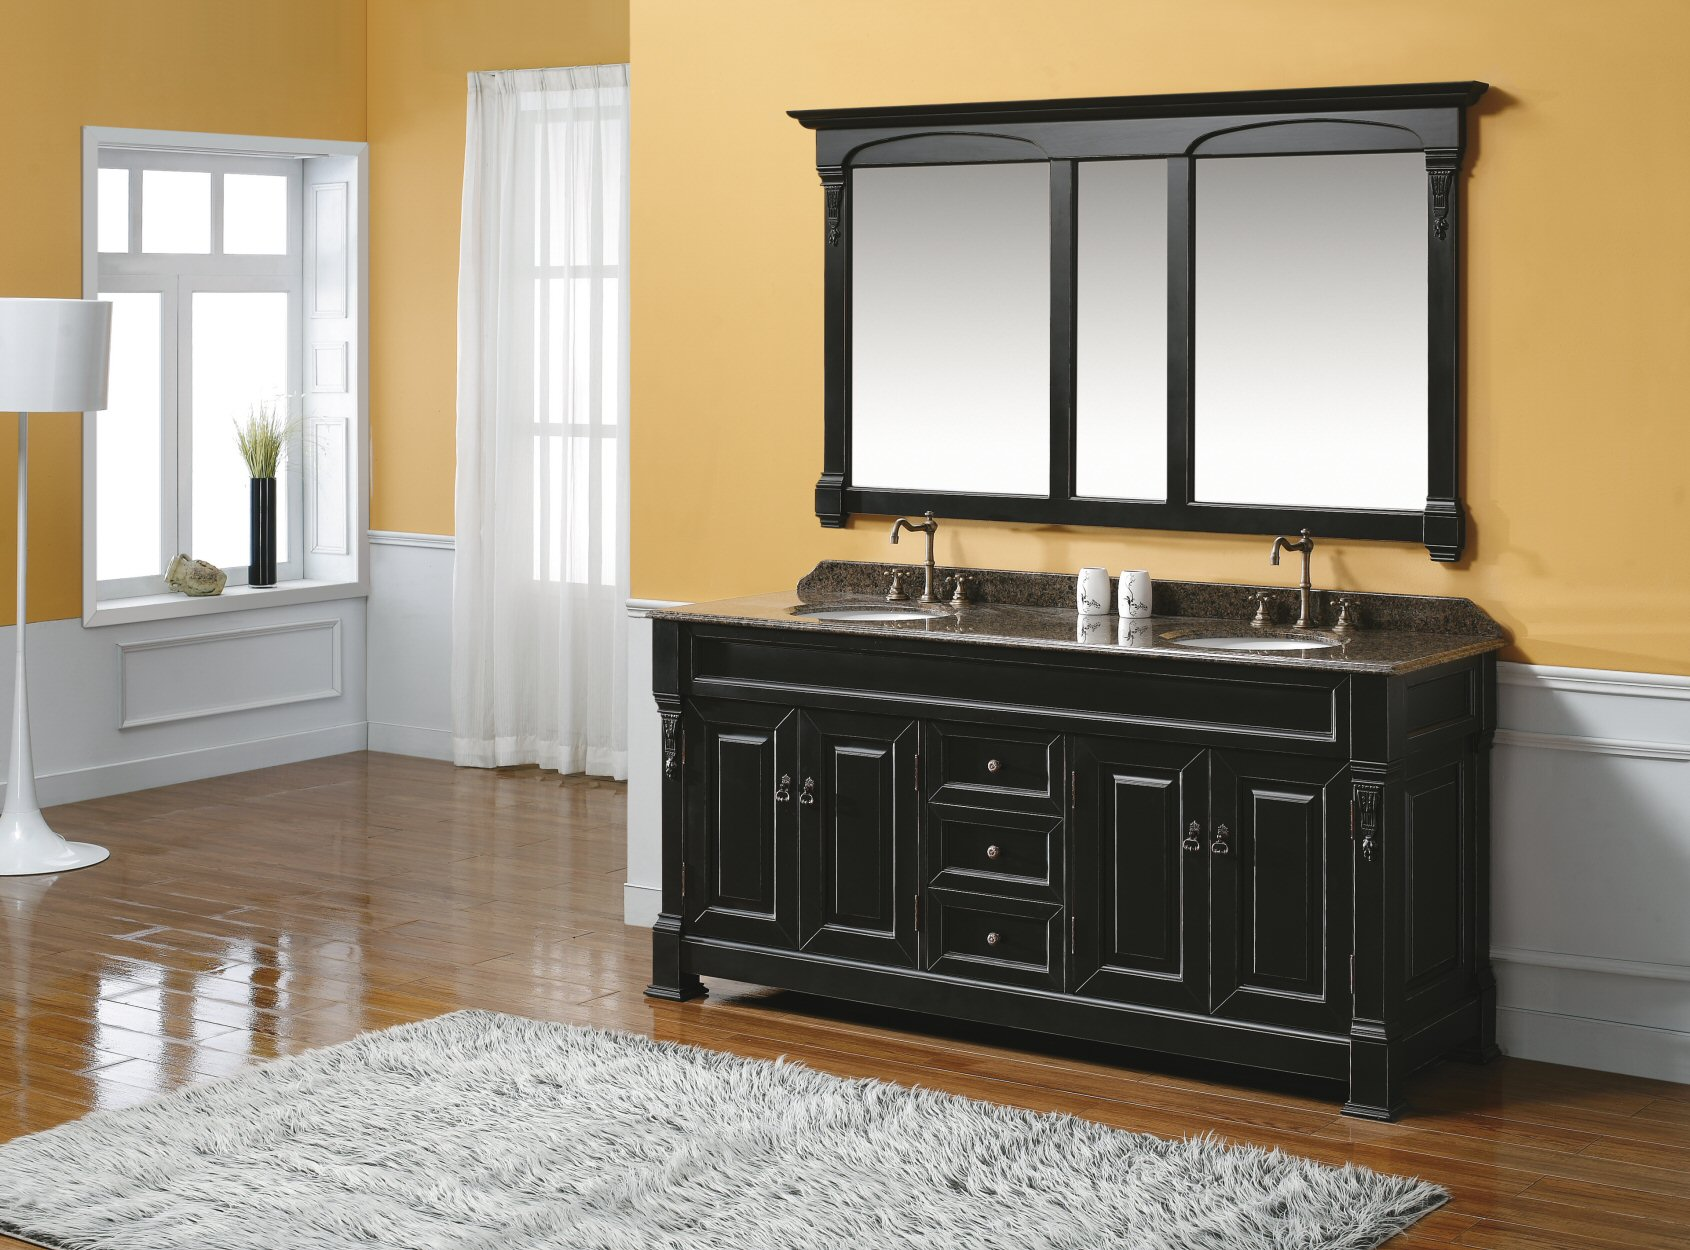 bathroom cabinets prices custom handcrafted bathroom vanities amp cabinets for lowest 10414